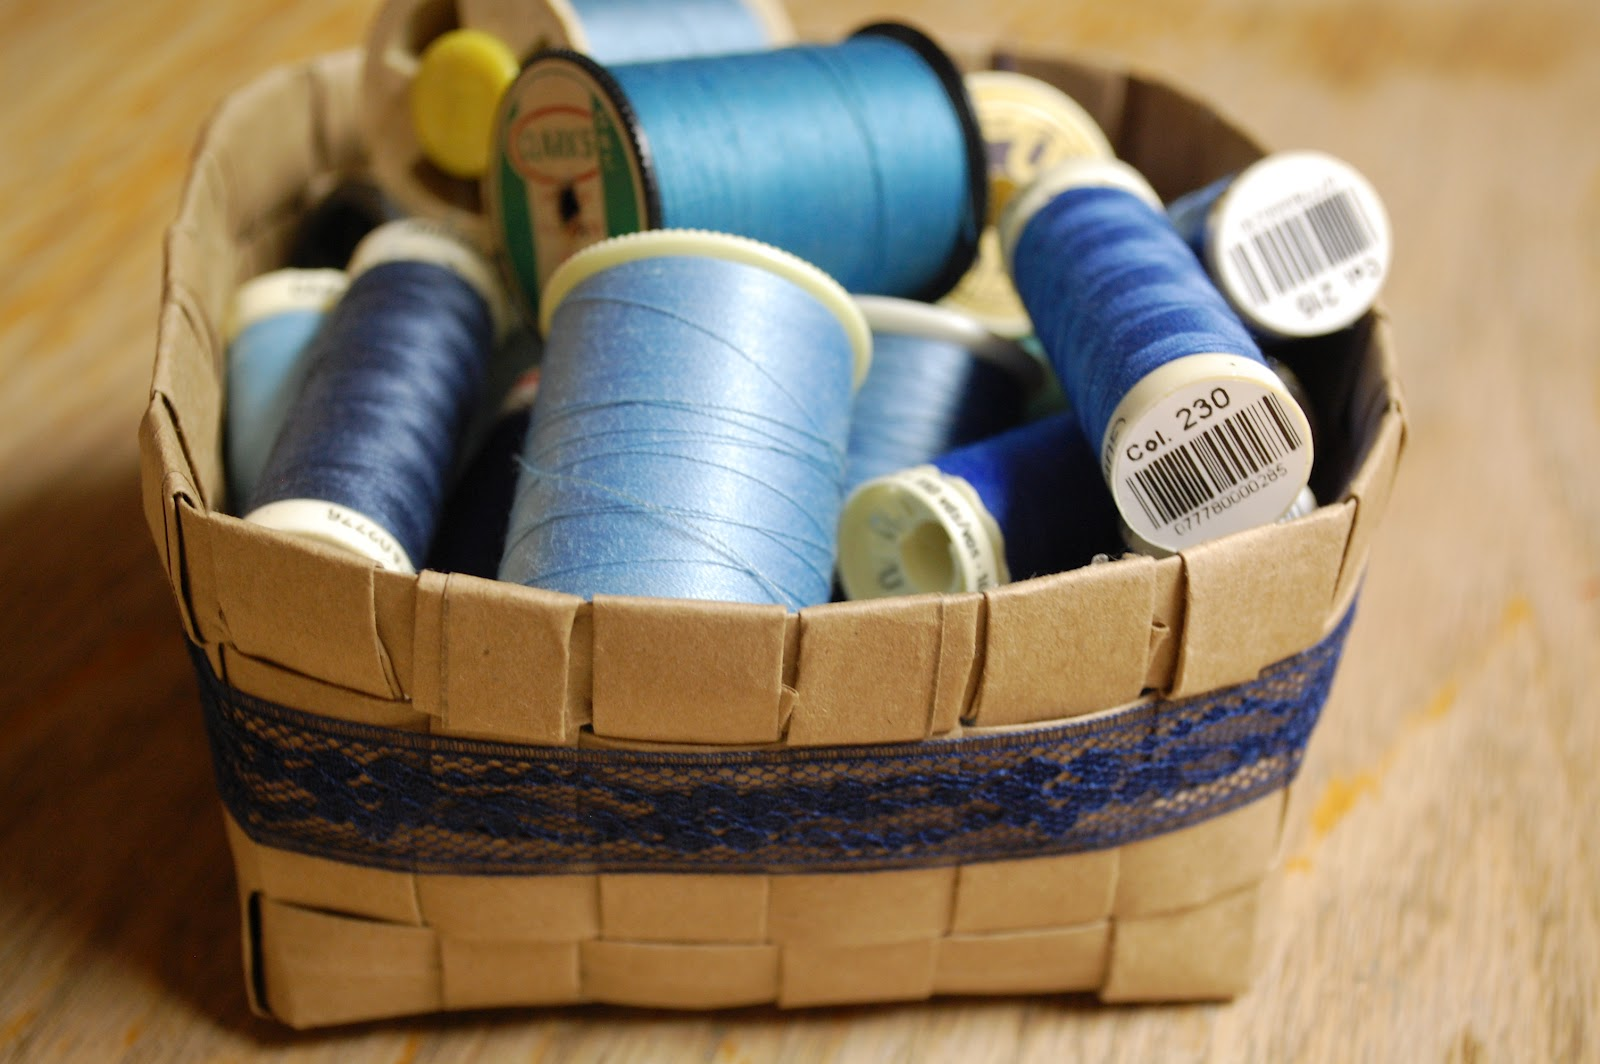 Tangled Threads By Jen From Paper Bag To Basket Upcycle